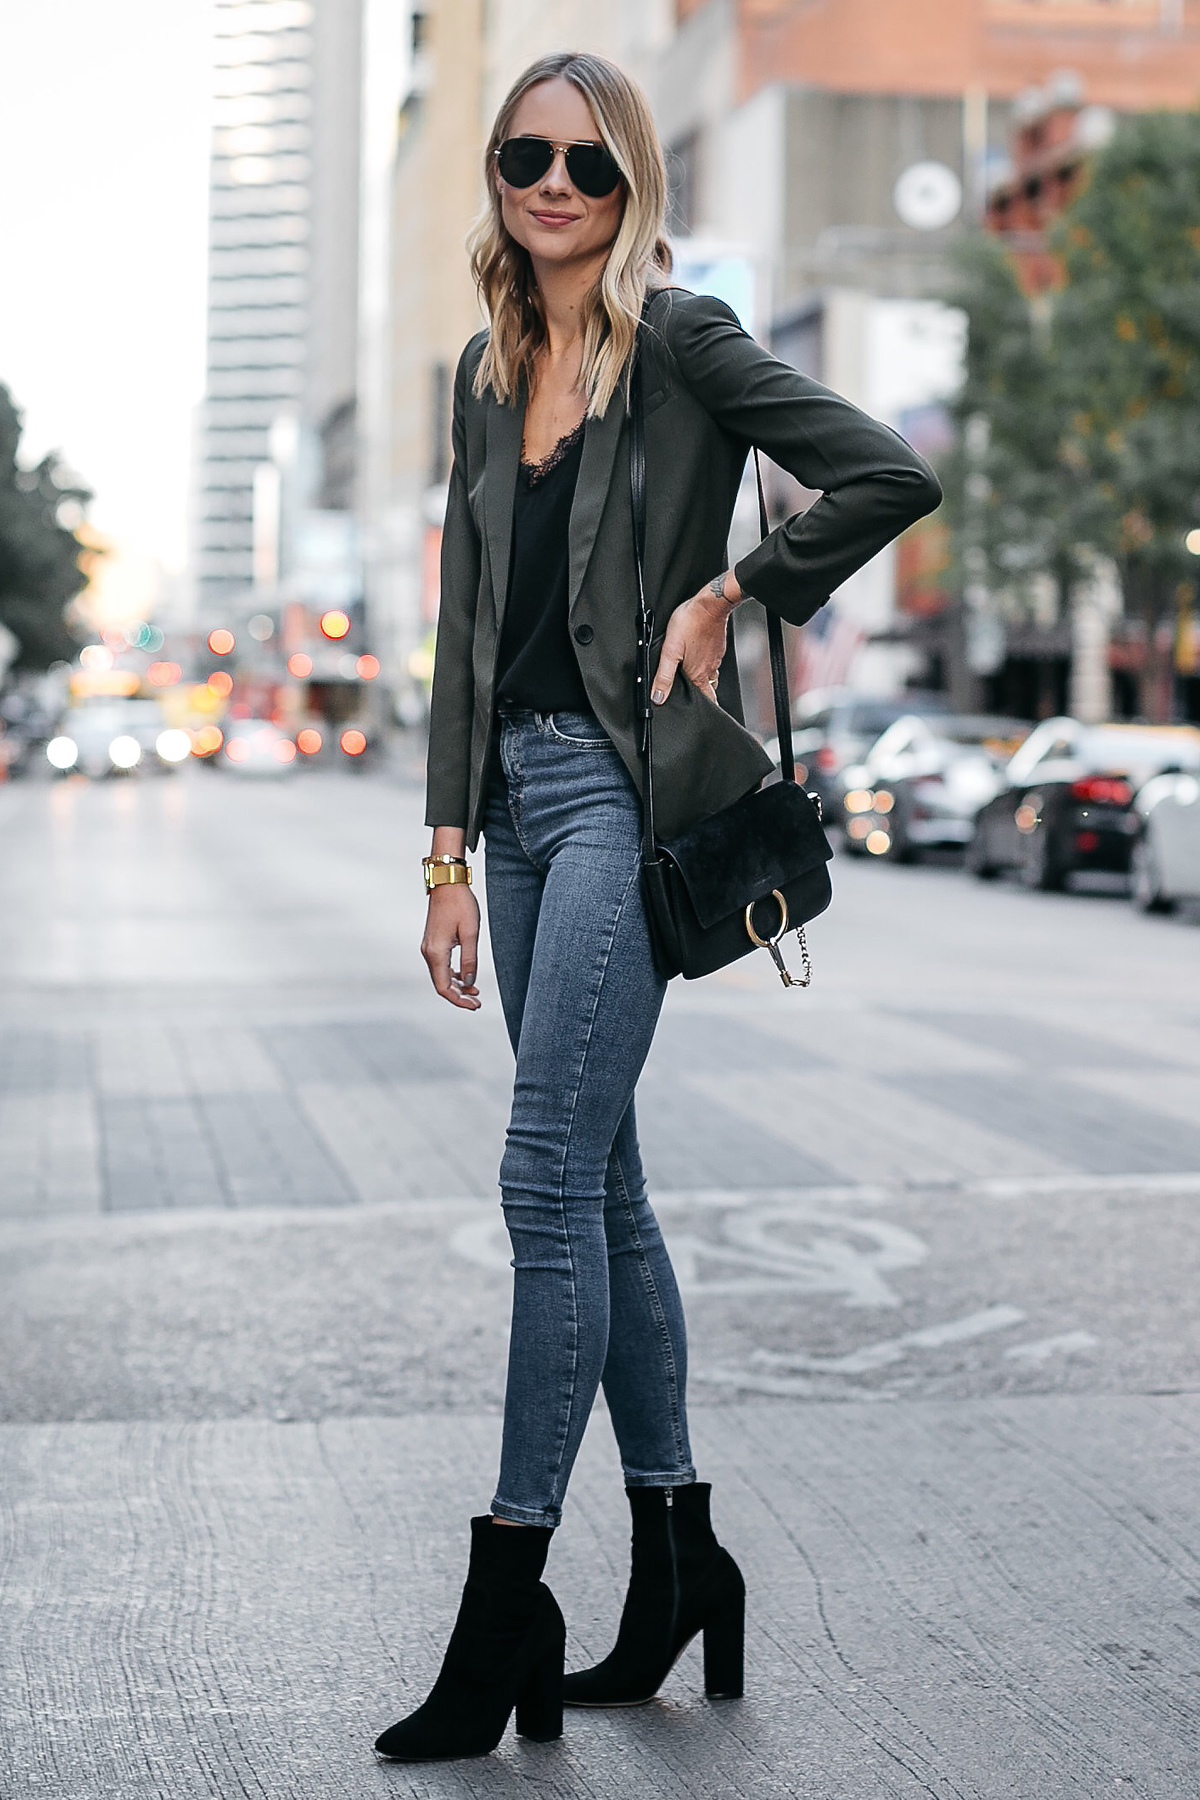 Blonde Woman Wearing Everlane Olive Green Blazer Anine Bing Black Lace Cami Topshop Denim Skinny Jeans Club Monaco Black Booties Chloe Faye Black Handbag Fashion Jackson Dallas Blogger Fashion Blogger Street Style